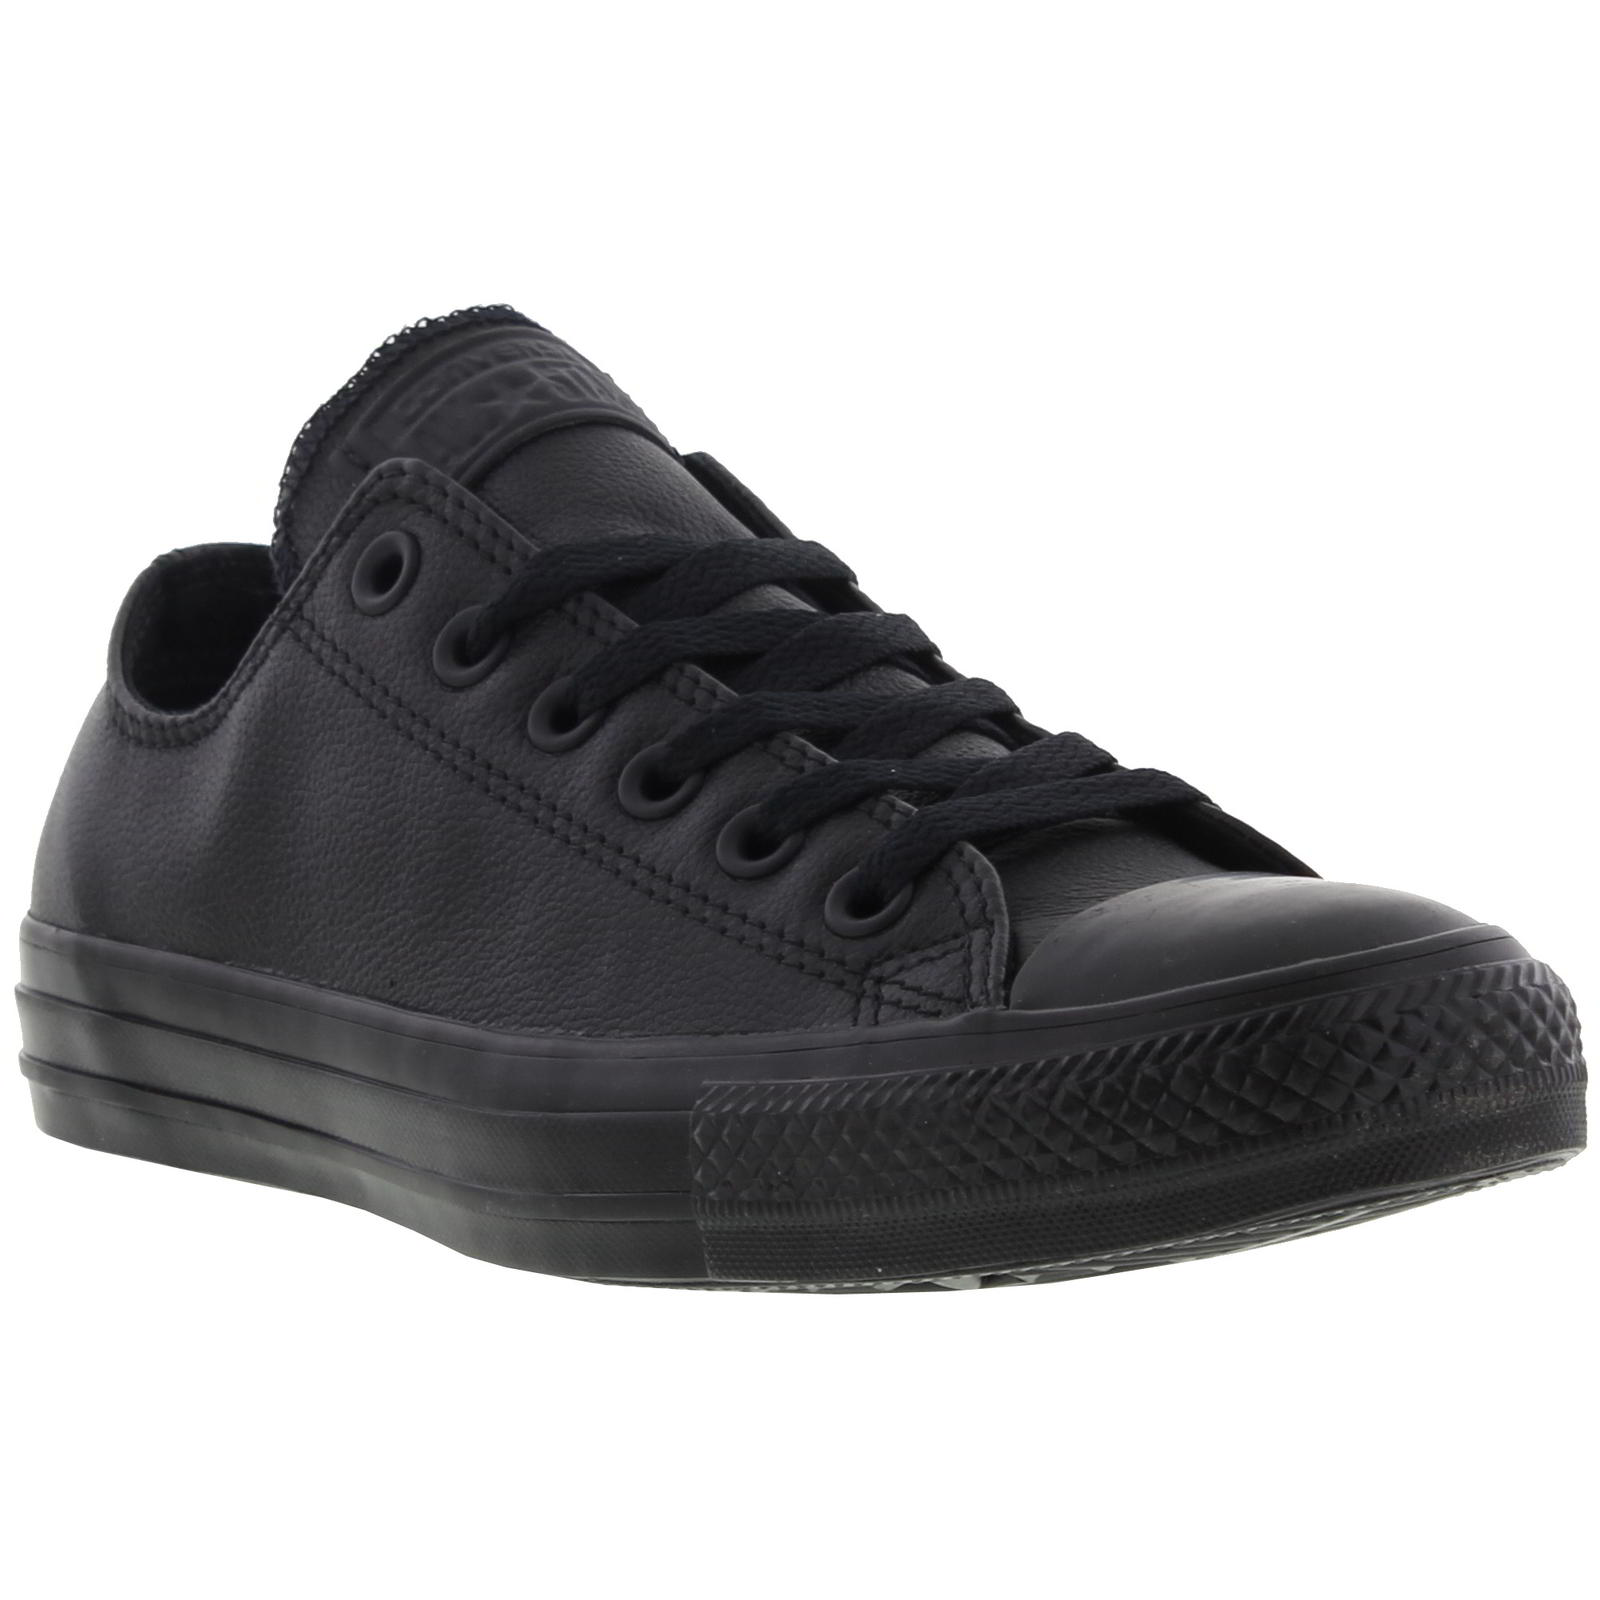 f273377b55f2 Details about Converse CT All Star Oxford Mens Womens Ladies Leather  Trainers Shoes Size 4-12